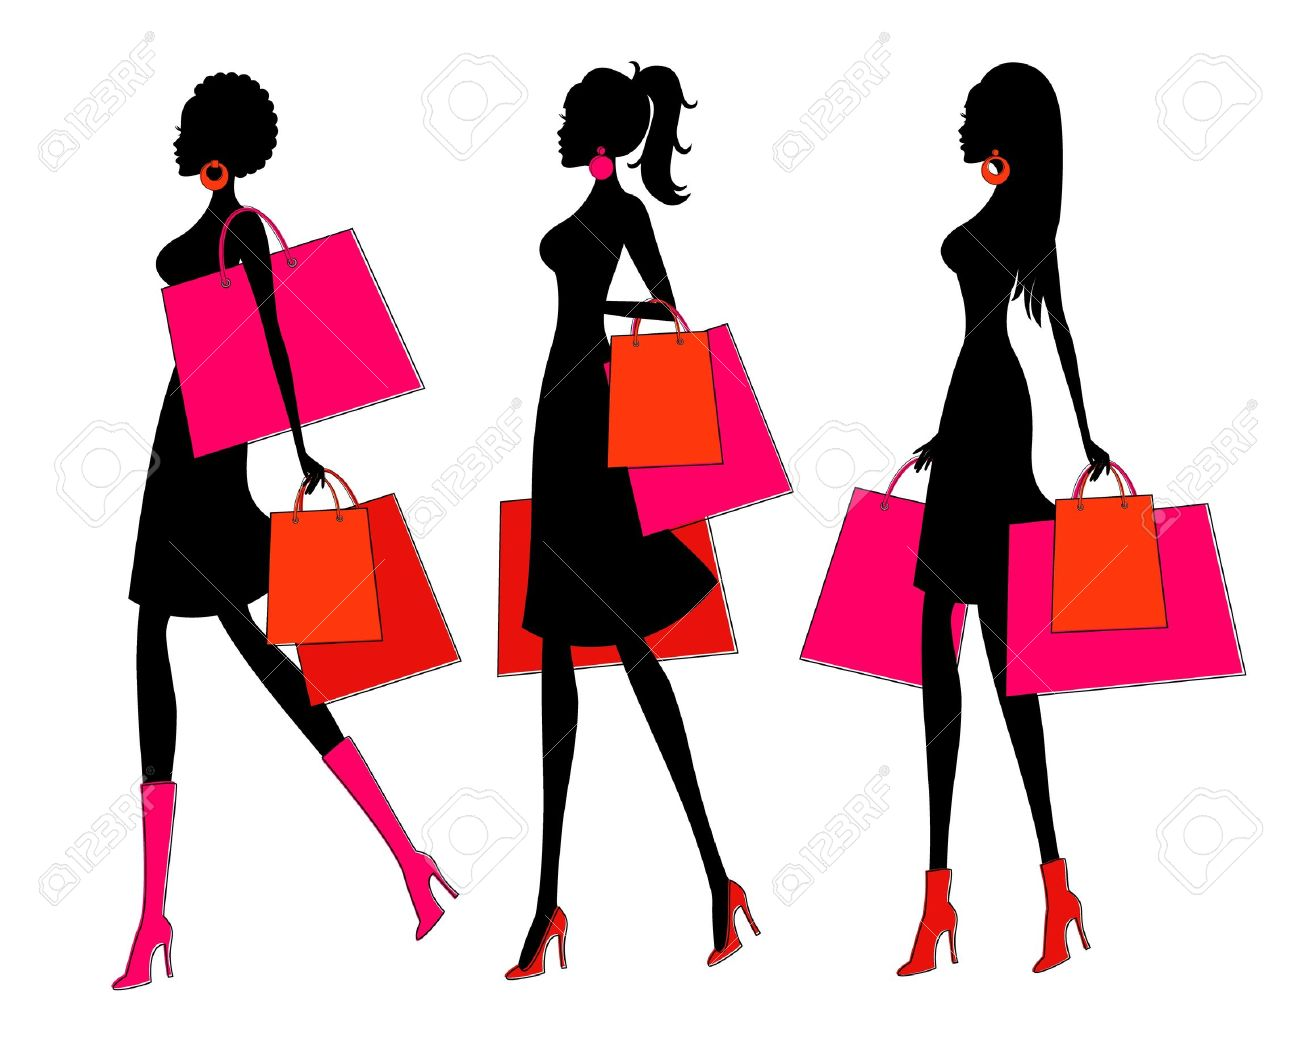 6c4305b0a Vector - Vector illustration of three young women holding shopping bags  Each woman is grouped and placed on a separate layer for easy editing